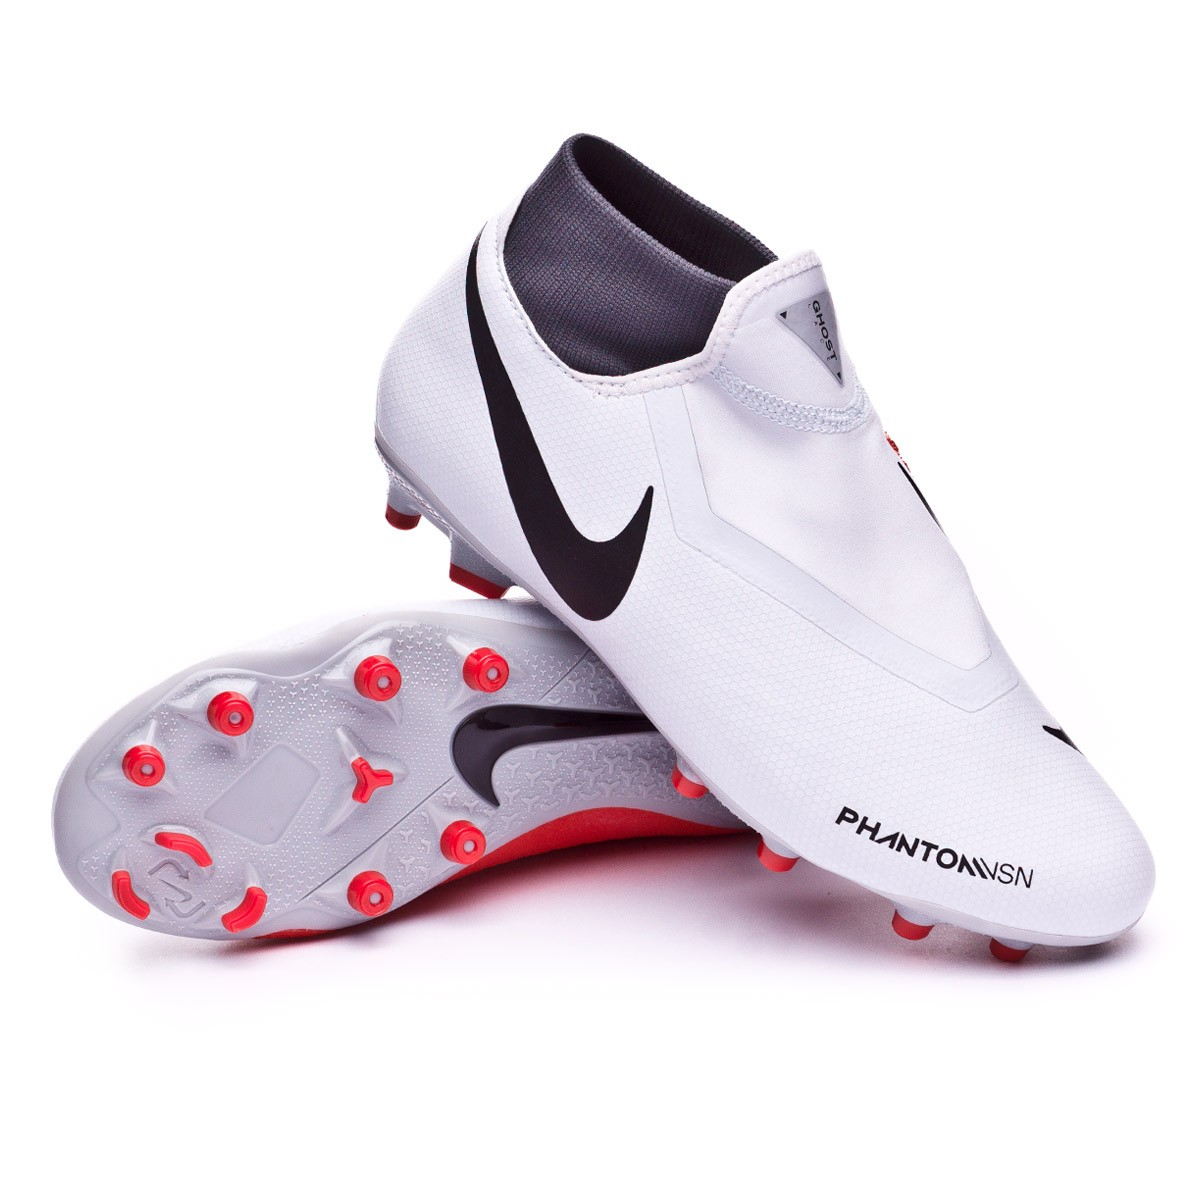 especificar carrera Leve  Bota de fútbol Nike Phantom Vision Academy DF MG Pure platinum-Black-Light  crimson-Dark grey - Tienda de fútbol Fútbol Emotion